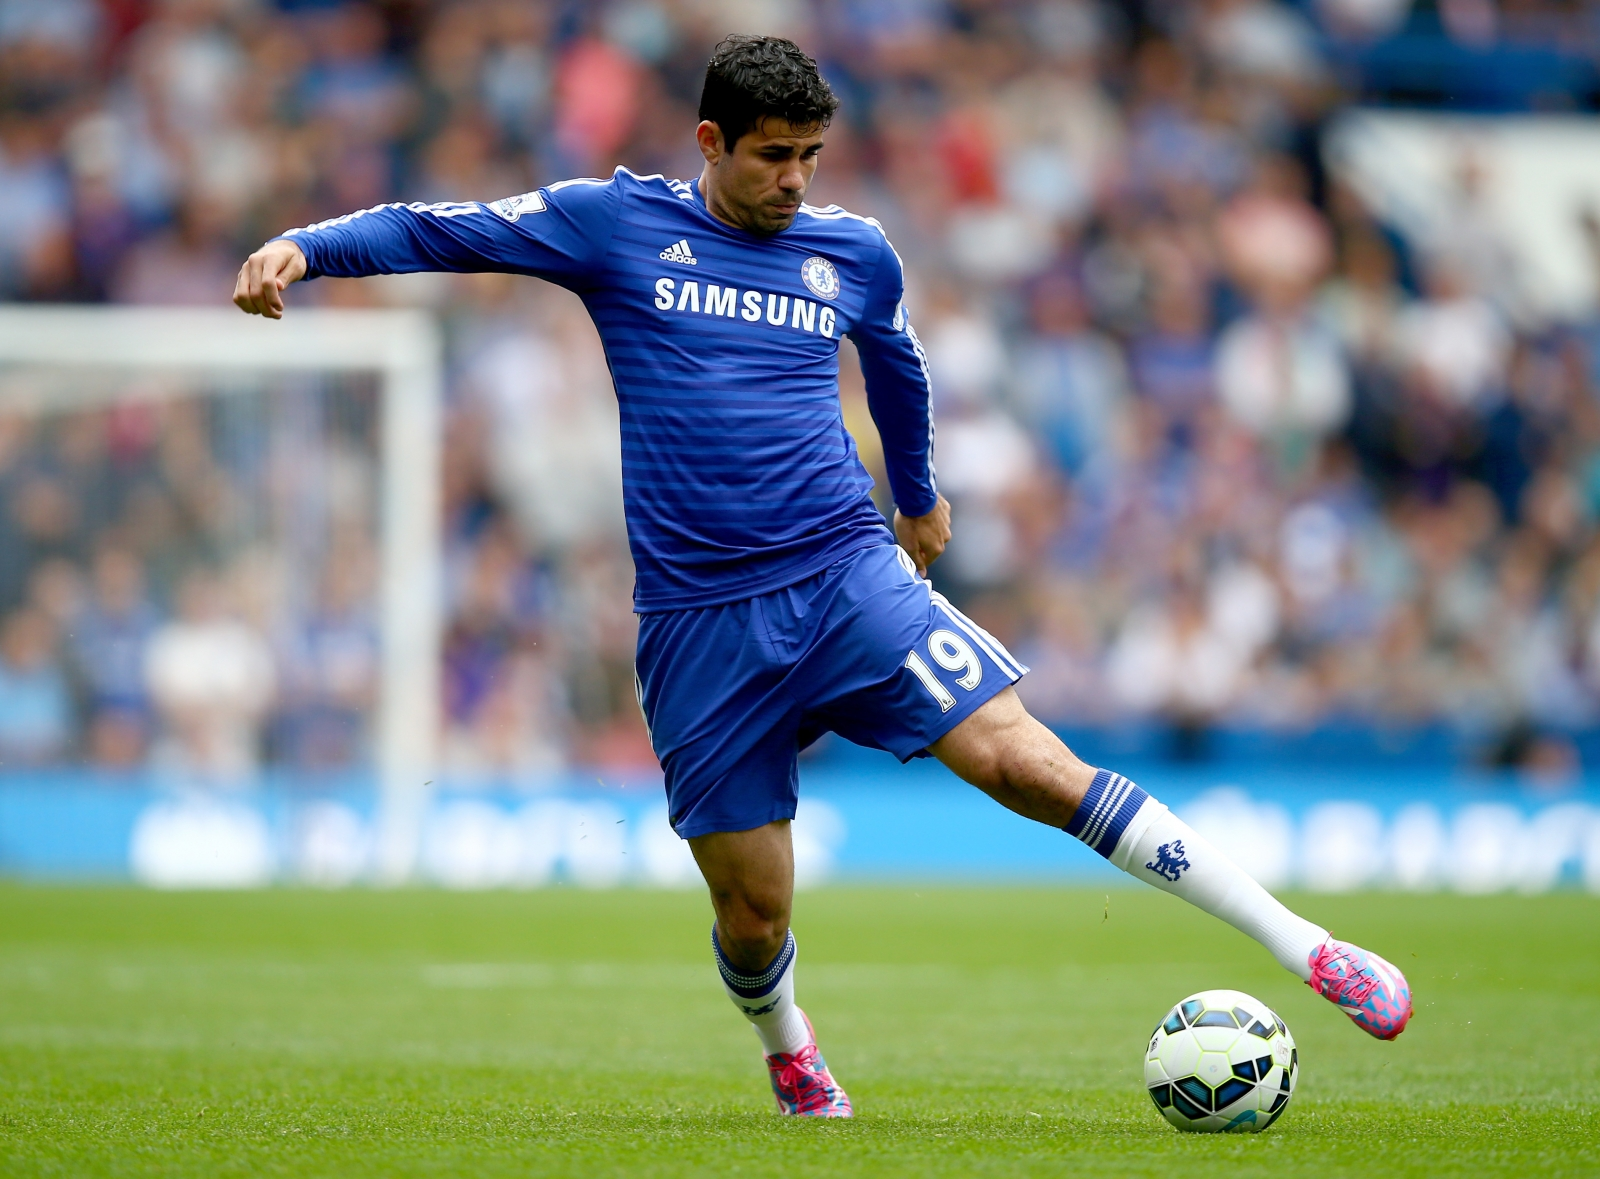 Diego Costa to Atletico Madrid Spaniard sends enigmatic message